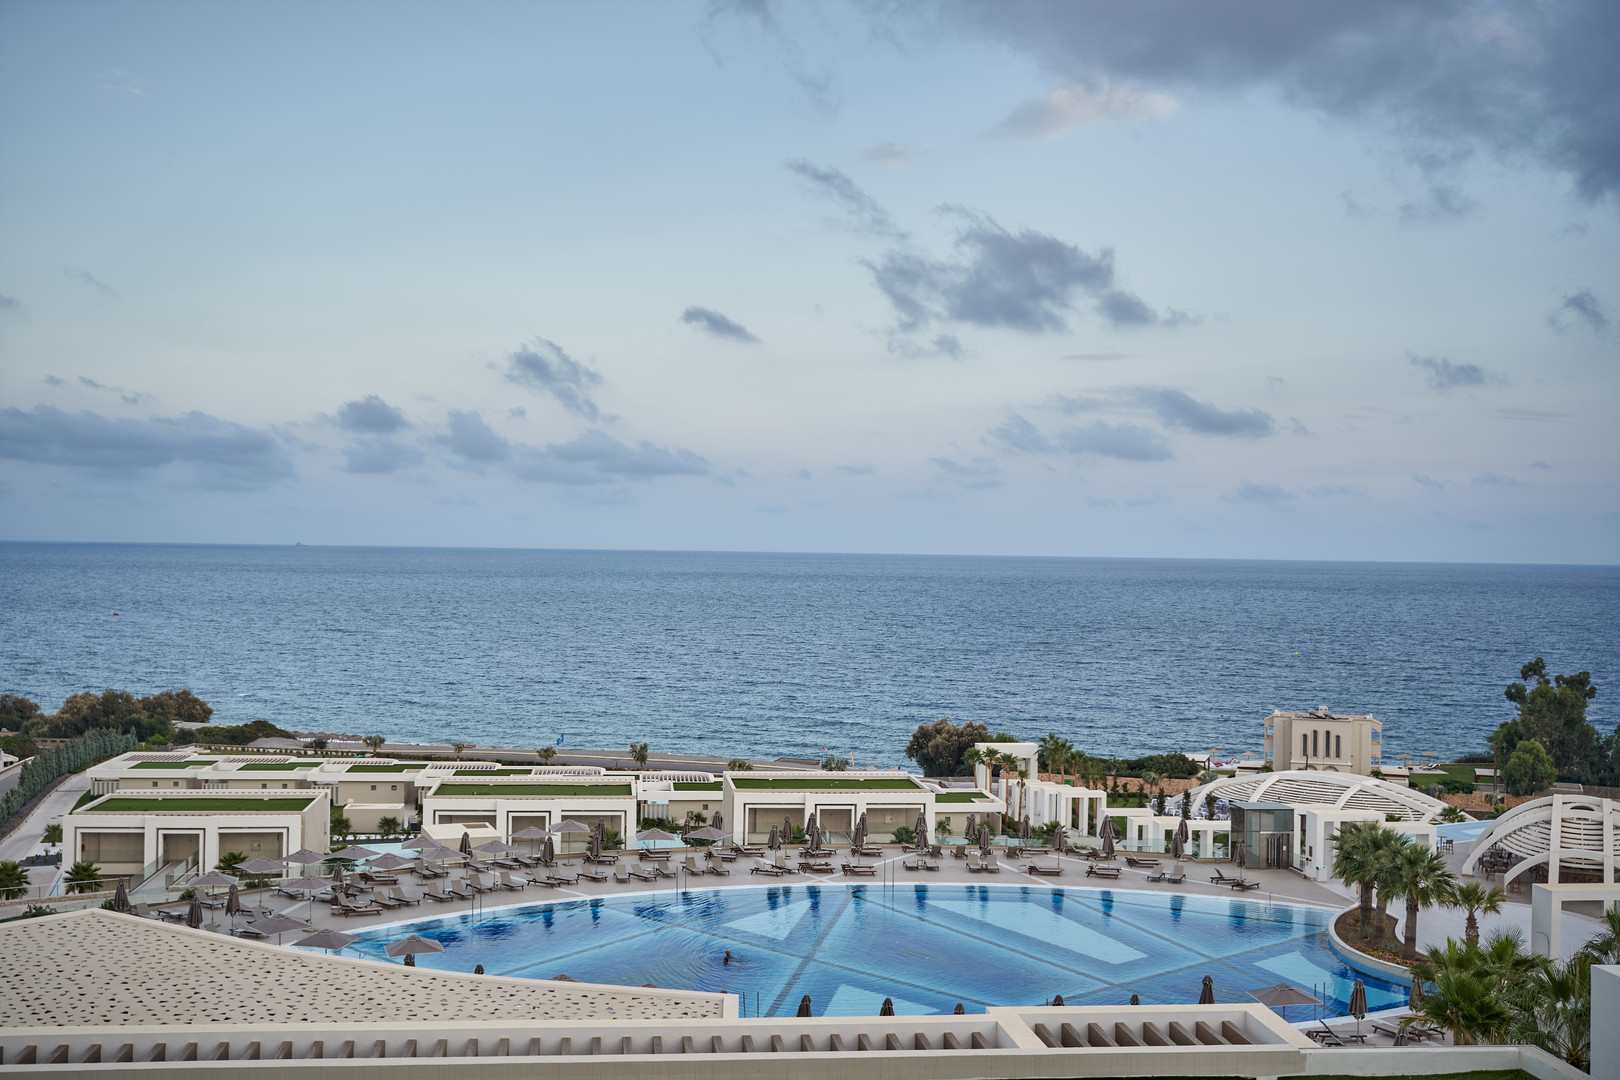 Hotel Mayia Exclusive Resort and Spa #5